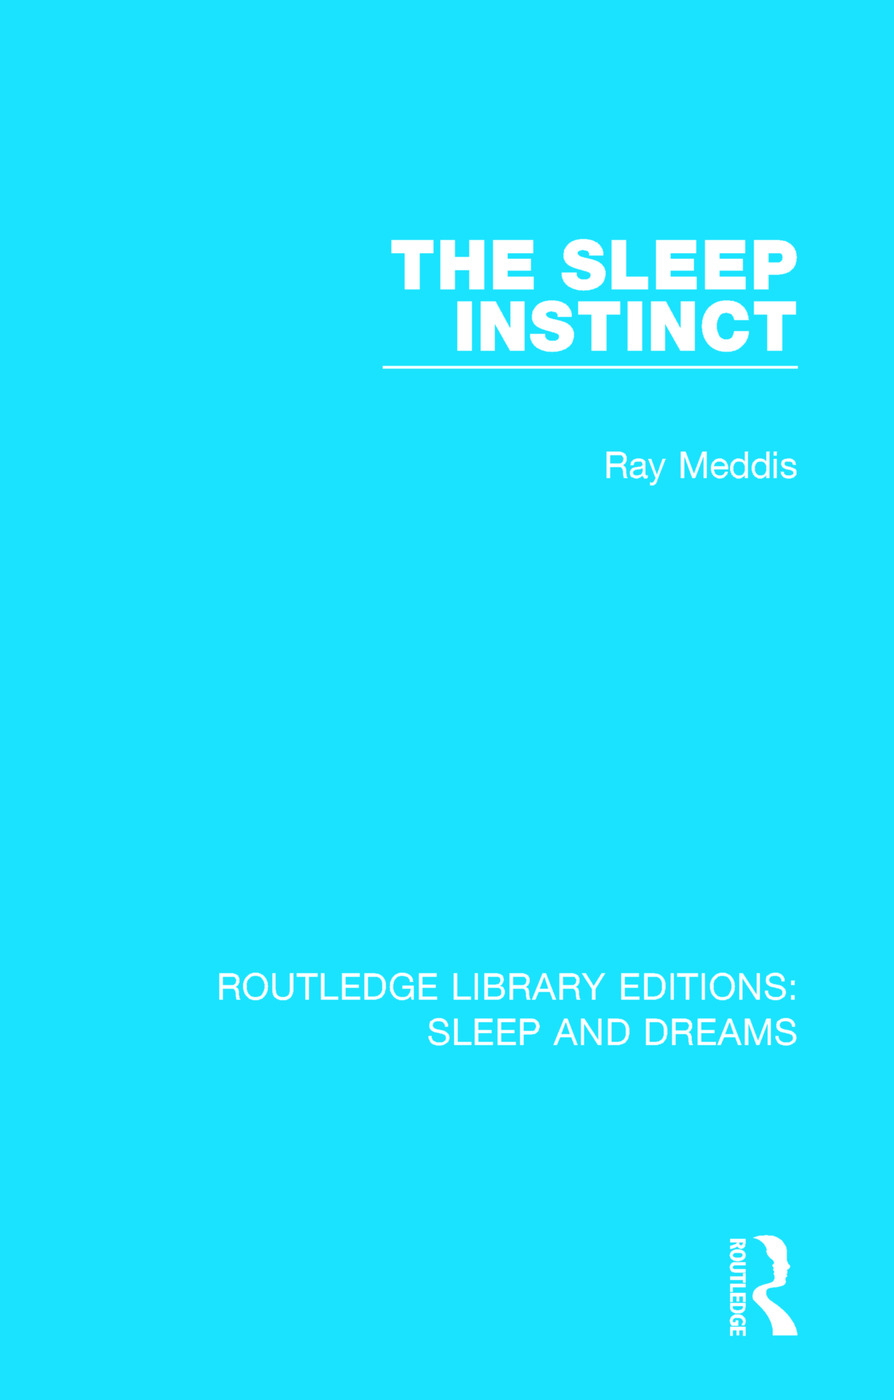 The Sleep Instinct book cover